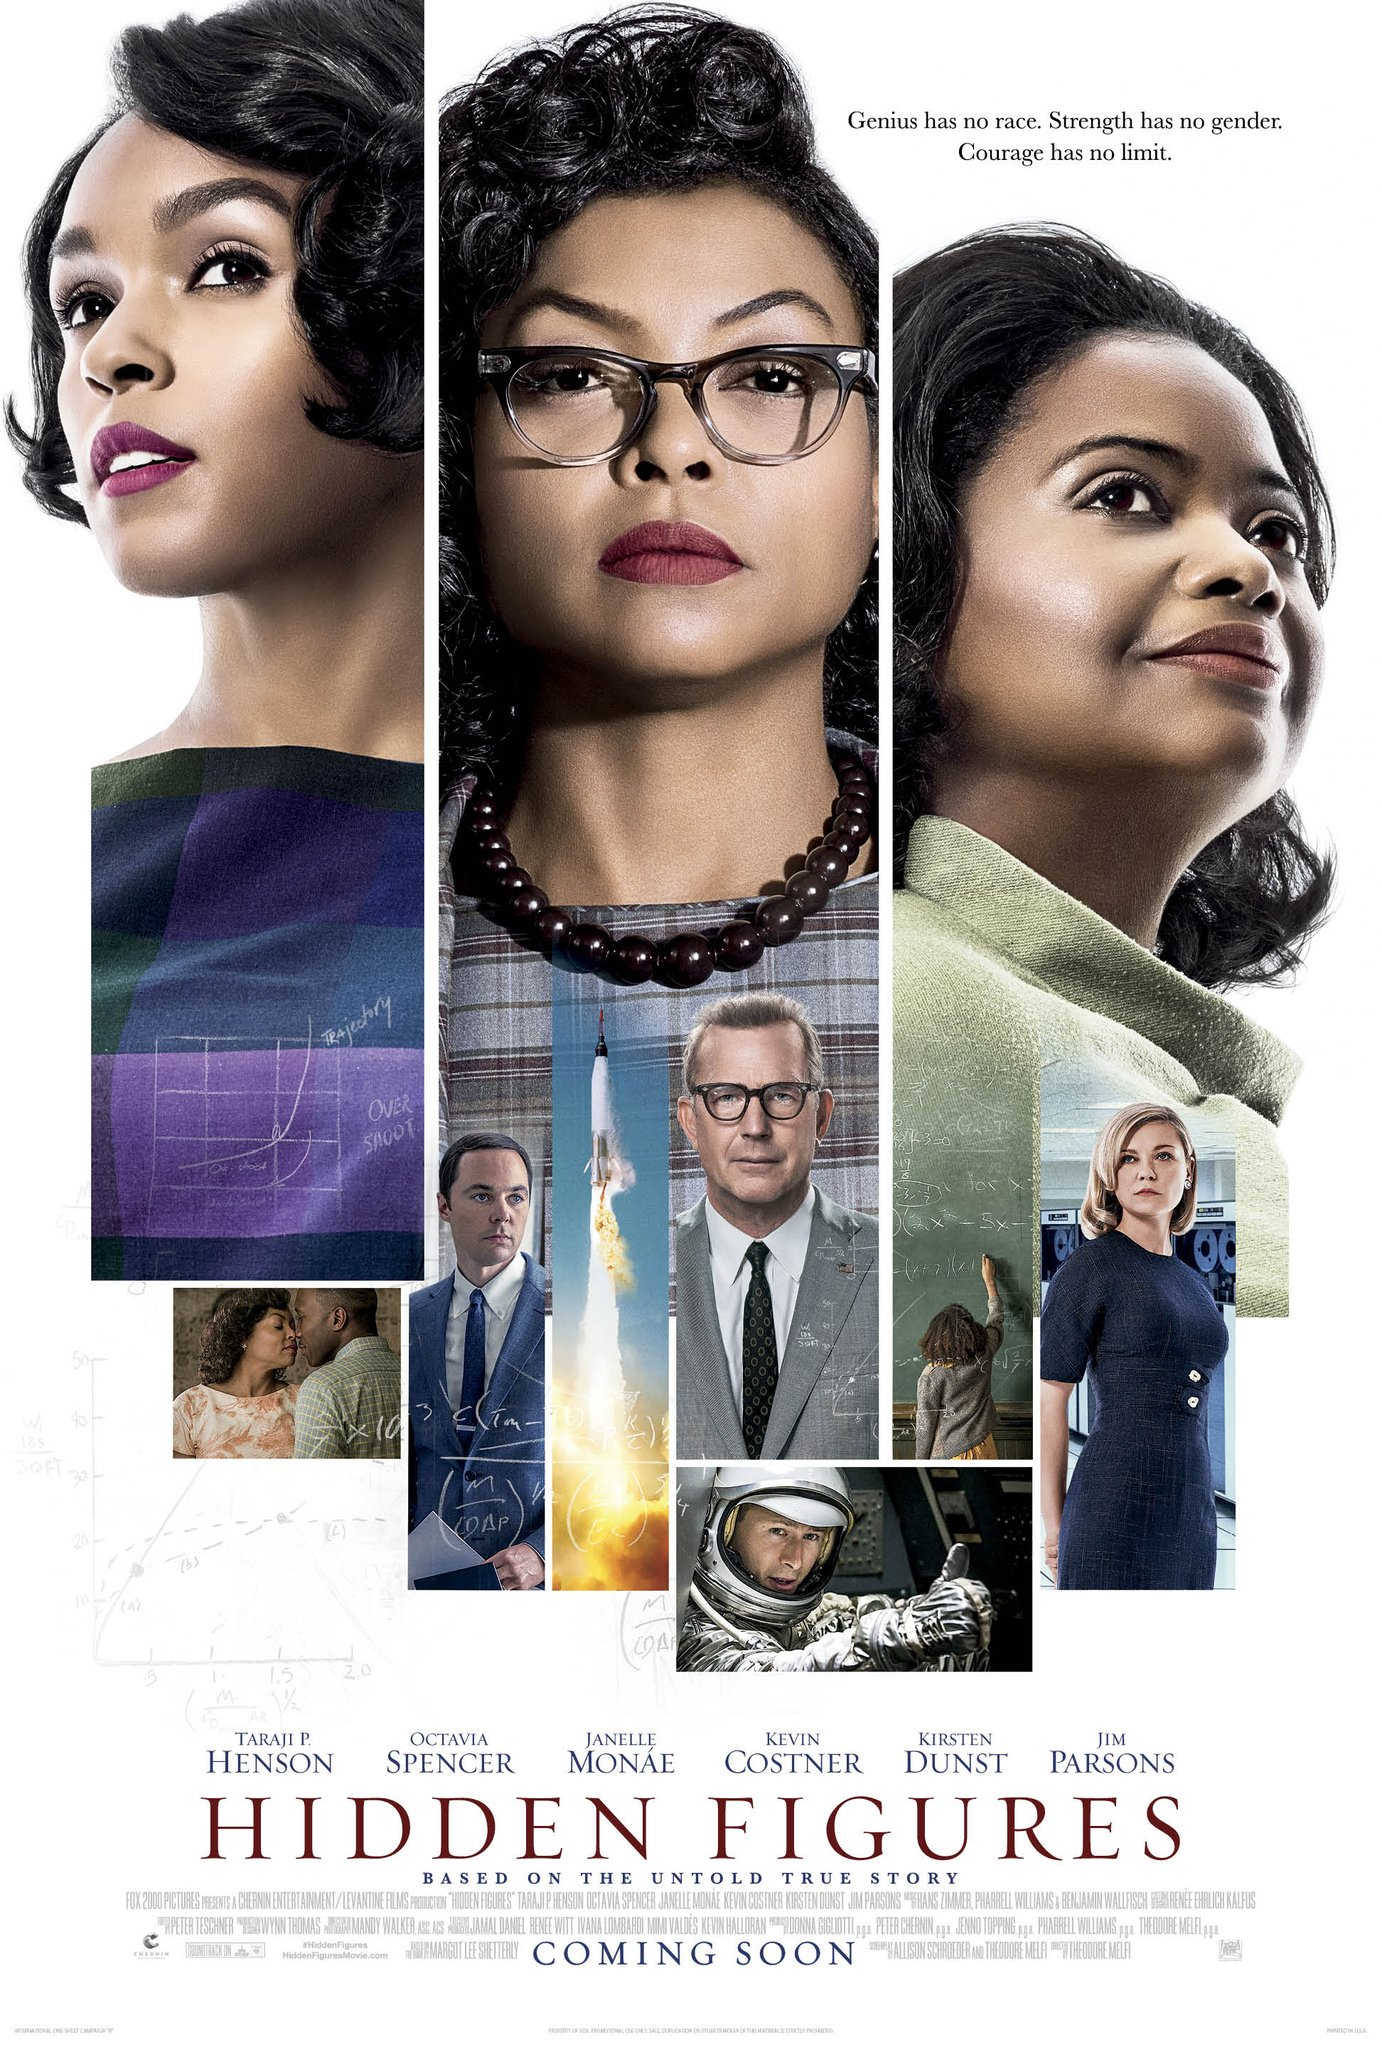 Cover of Hidden figures that shows three black women smiling on the cover